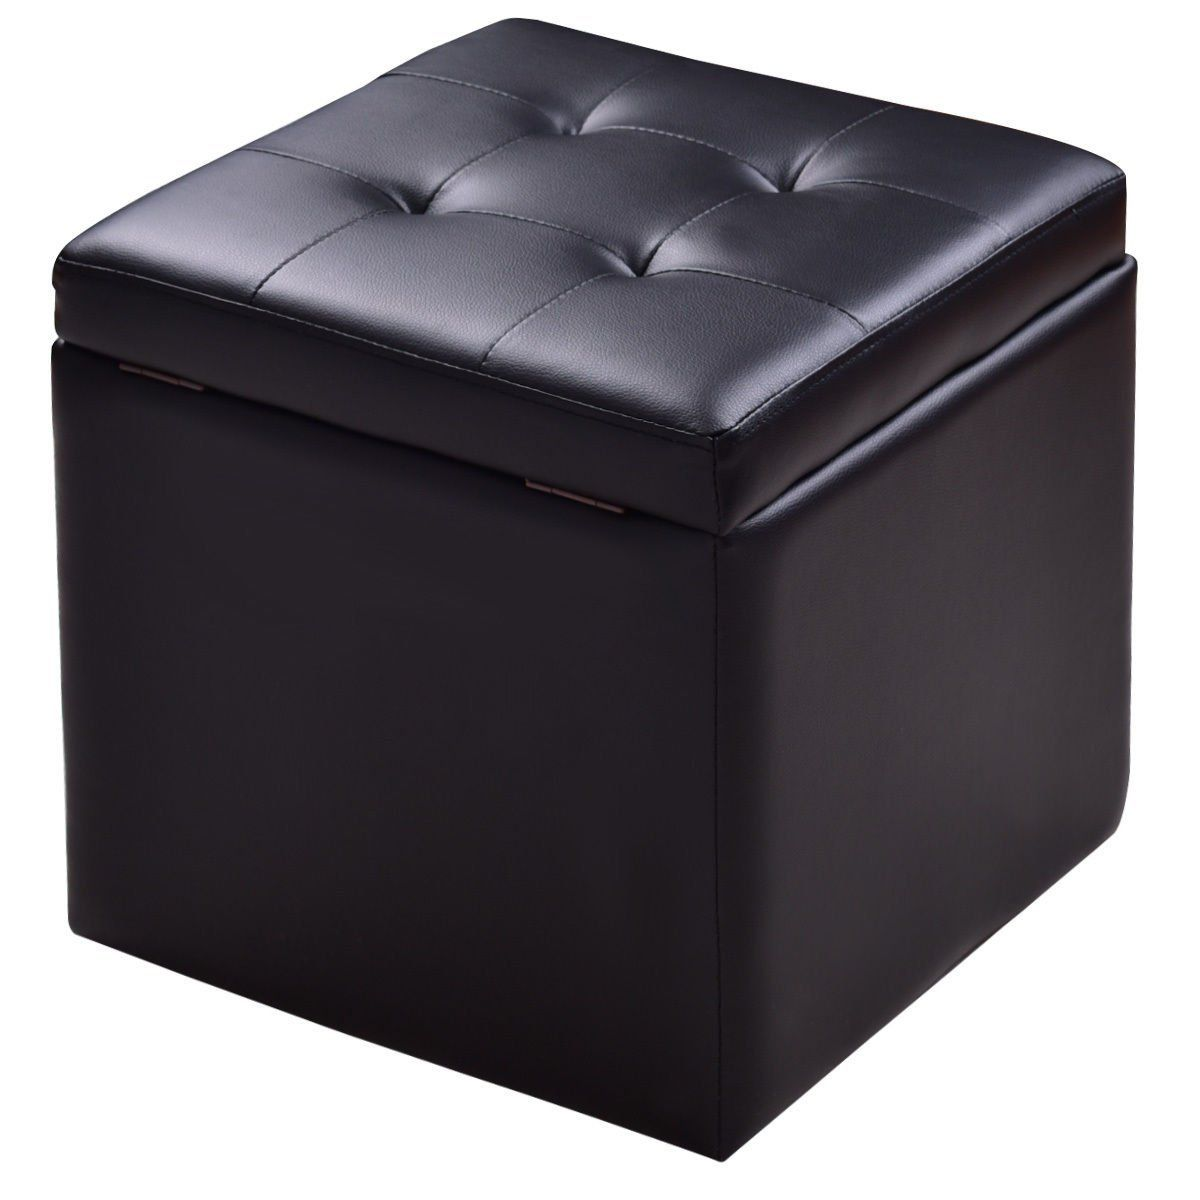 Gjh One Storage Box Ottoman Square Cube Stool Chair Seat Foot Lounge Hinge Top Black 5 8a X15 8a X15 8a Black Home Furniture Lounge Cube Ottoman